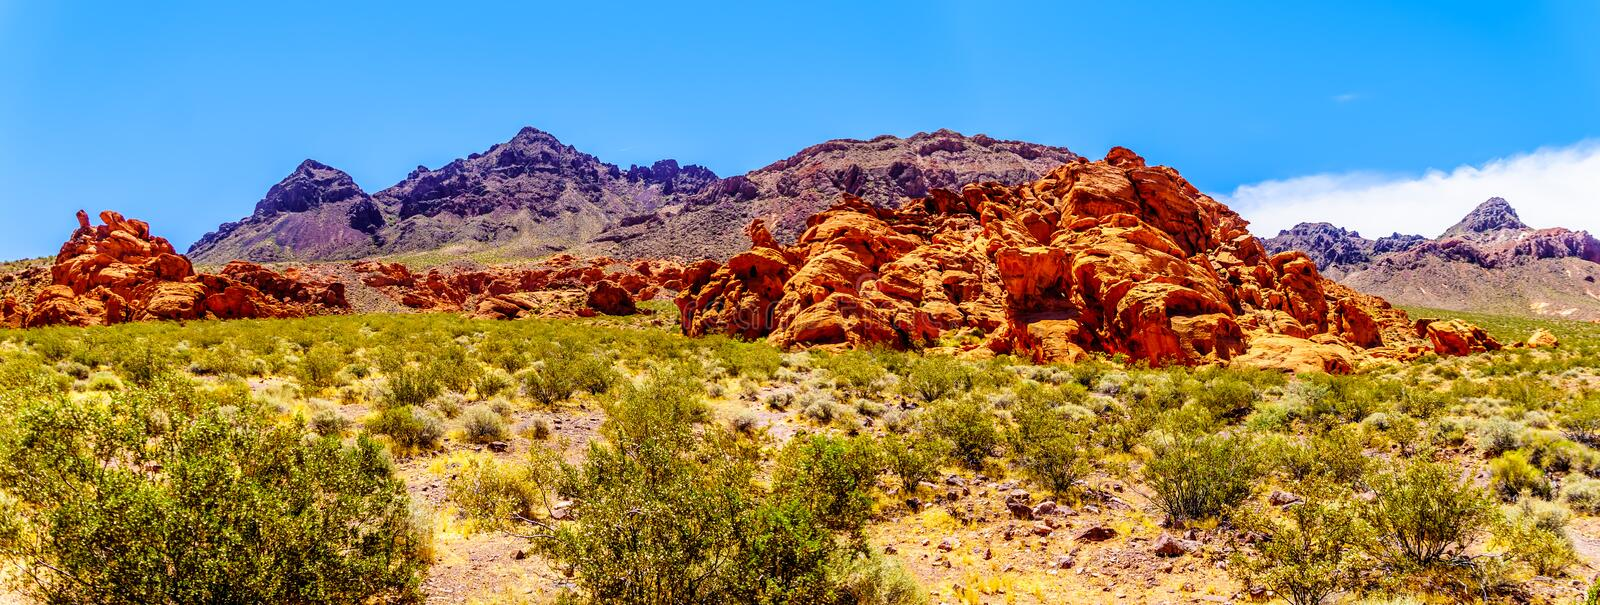 Panorama view of the Rugged and Colorful Mountains along Northshore Road SR167 in Lake Mead National Recreation Area royalty free stock photos